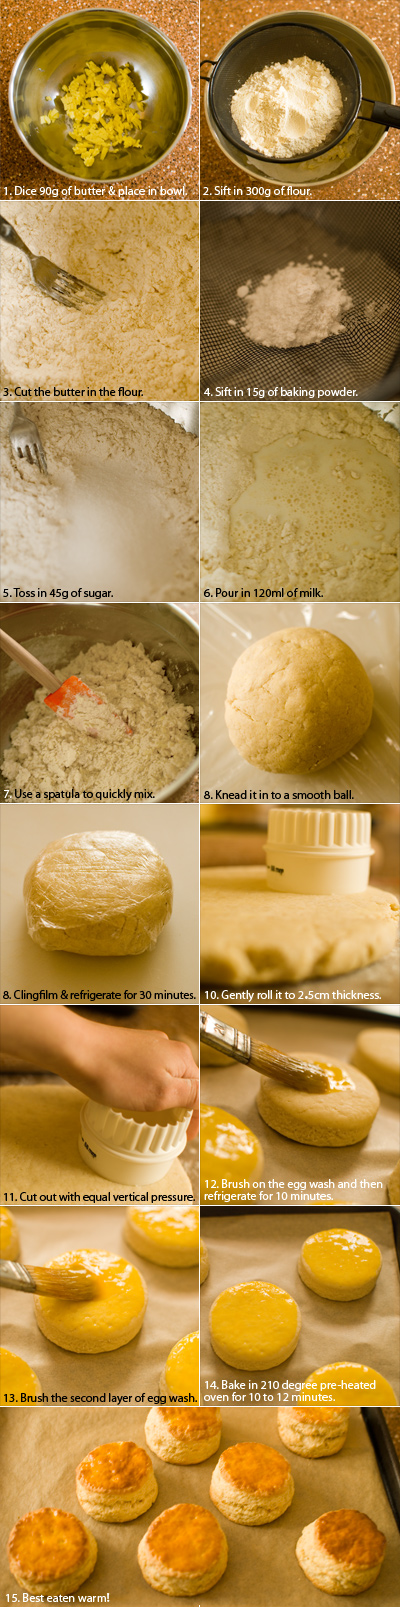 www.cocoandme.com - Coco&Me - Coco and Me - super scones recipe with step by step pictures